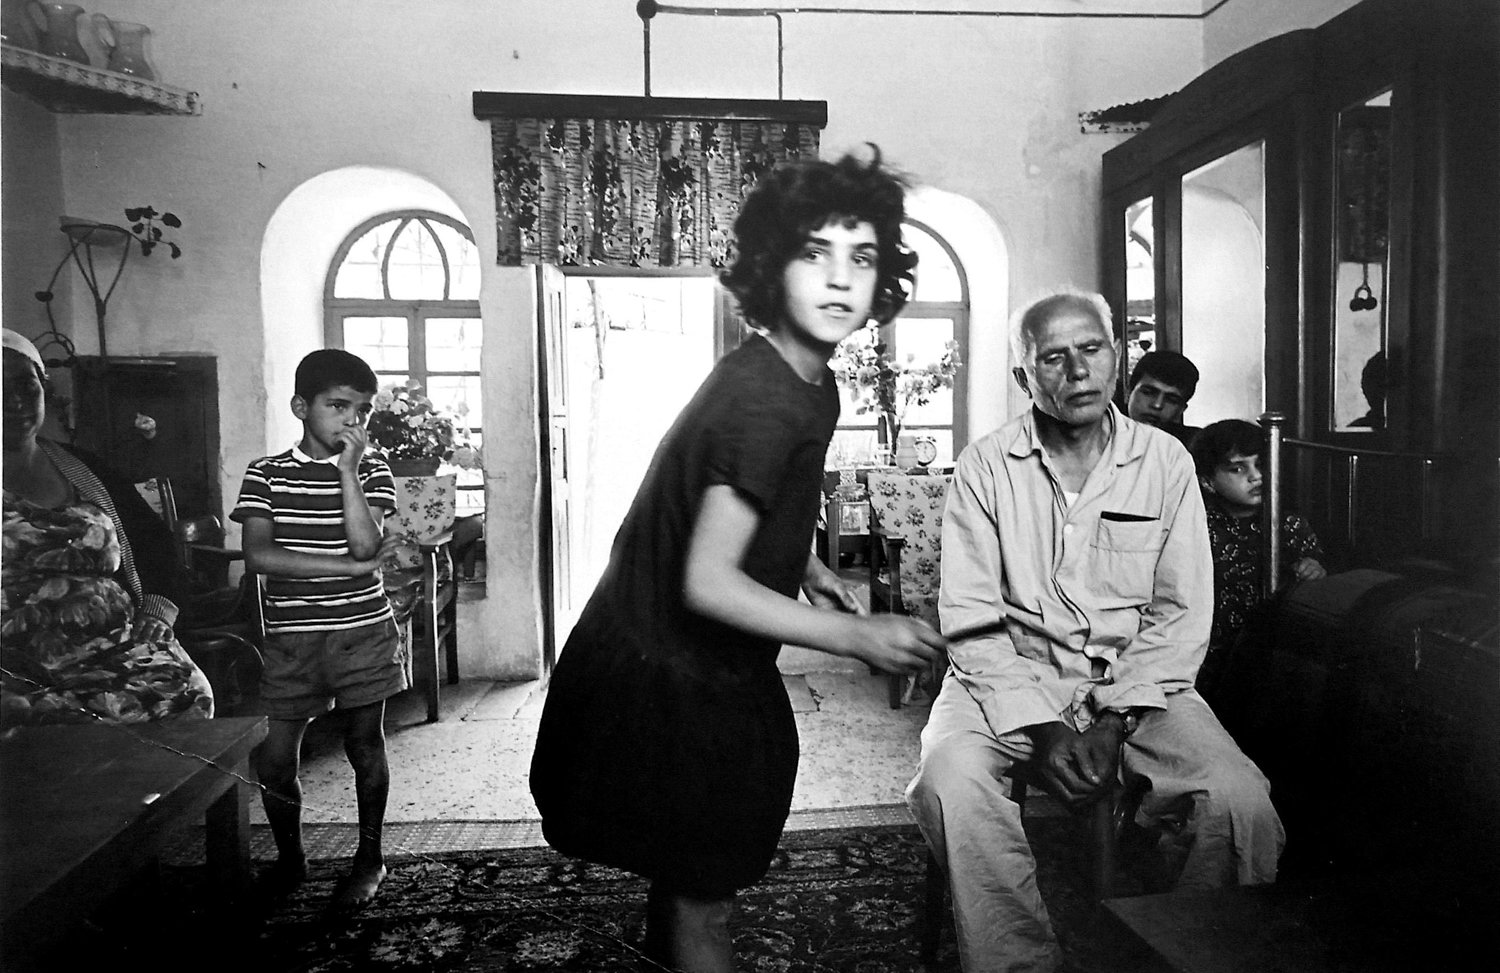 Leonard Freed photographed an Arab family at home in the Old City in 1967.